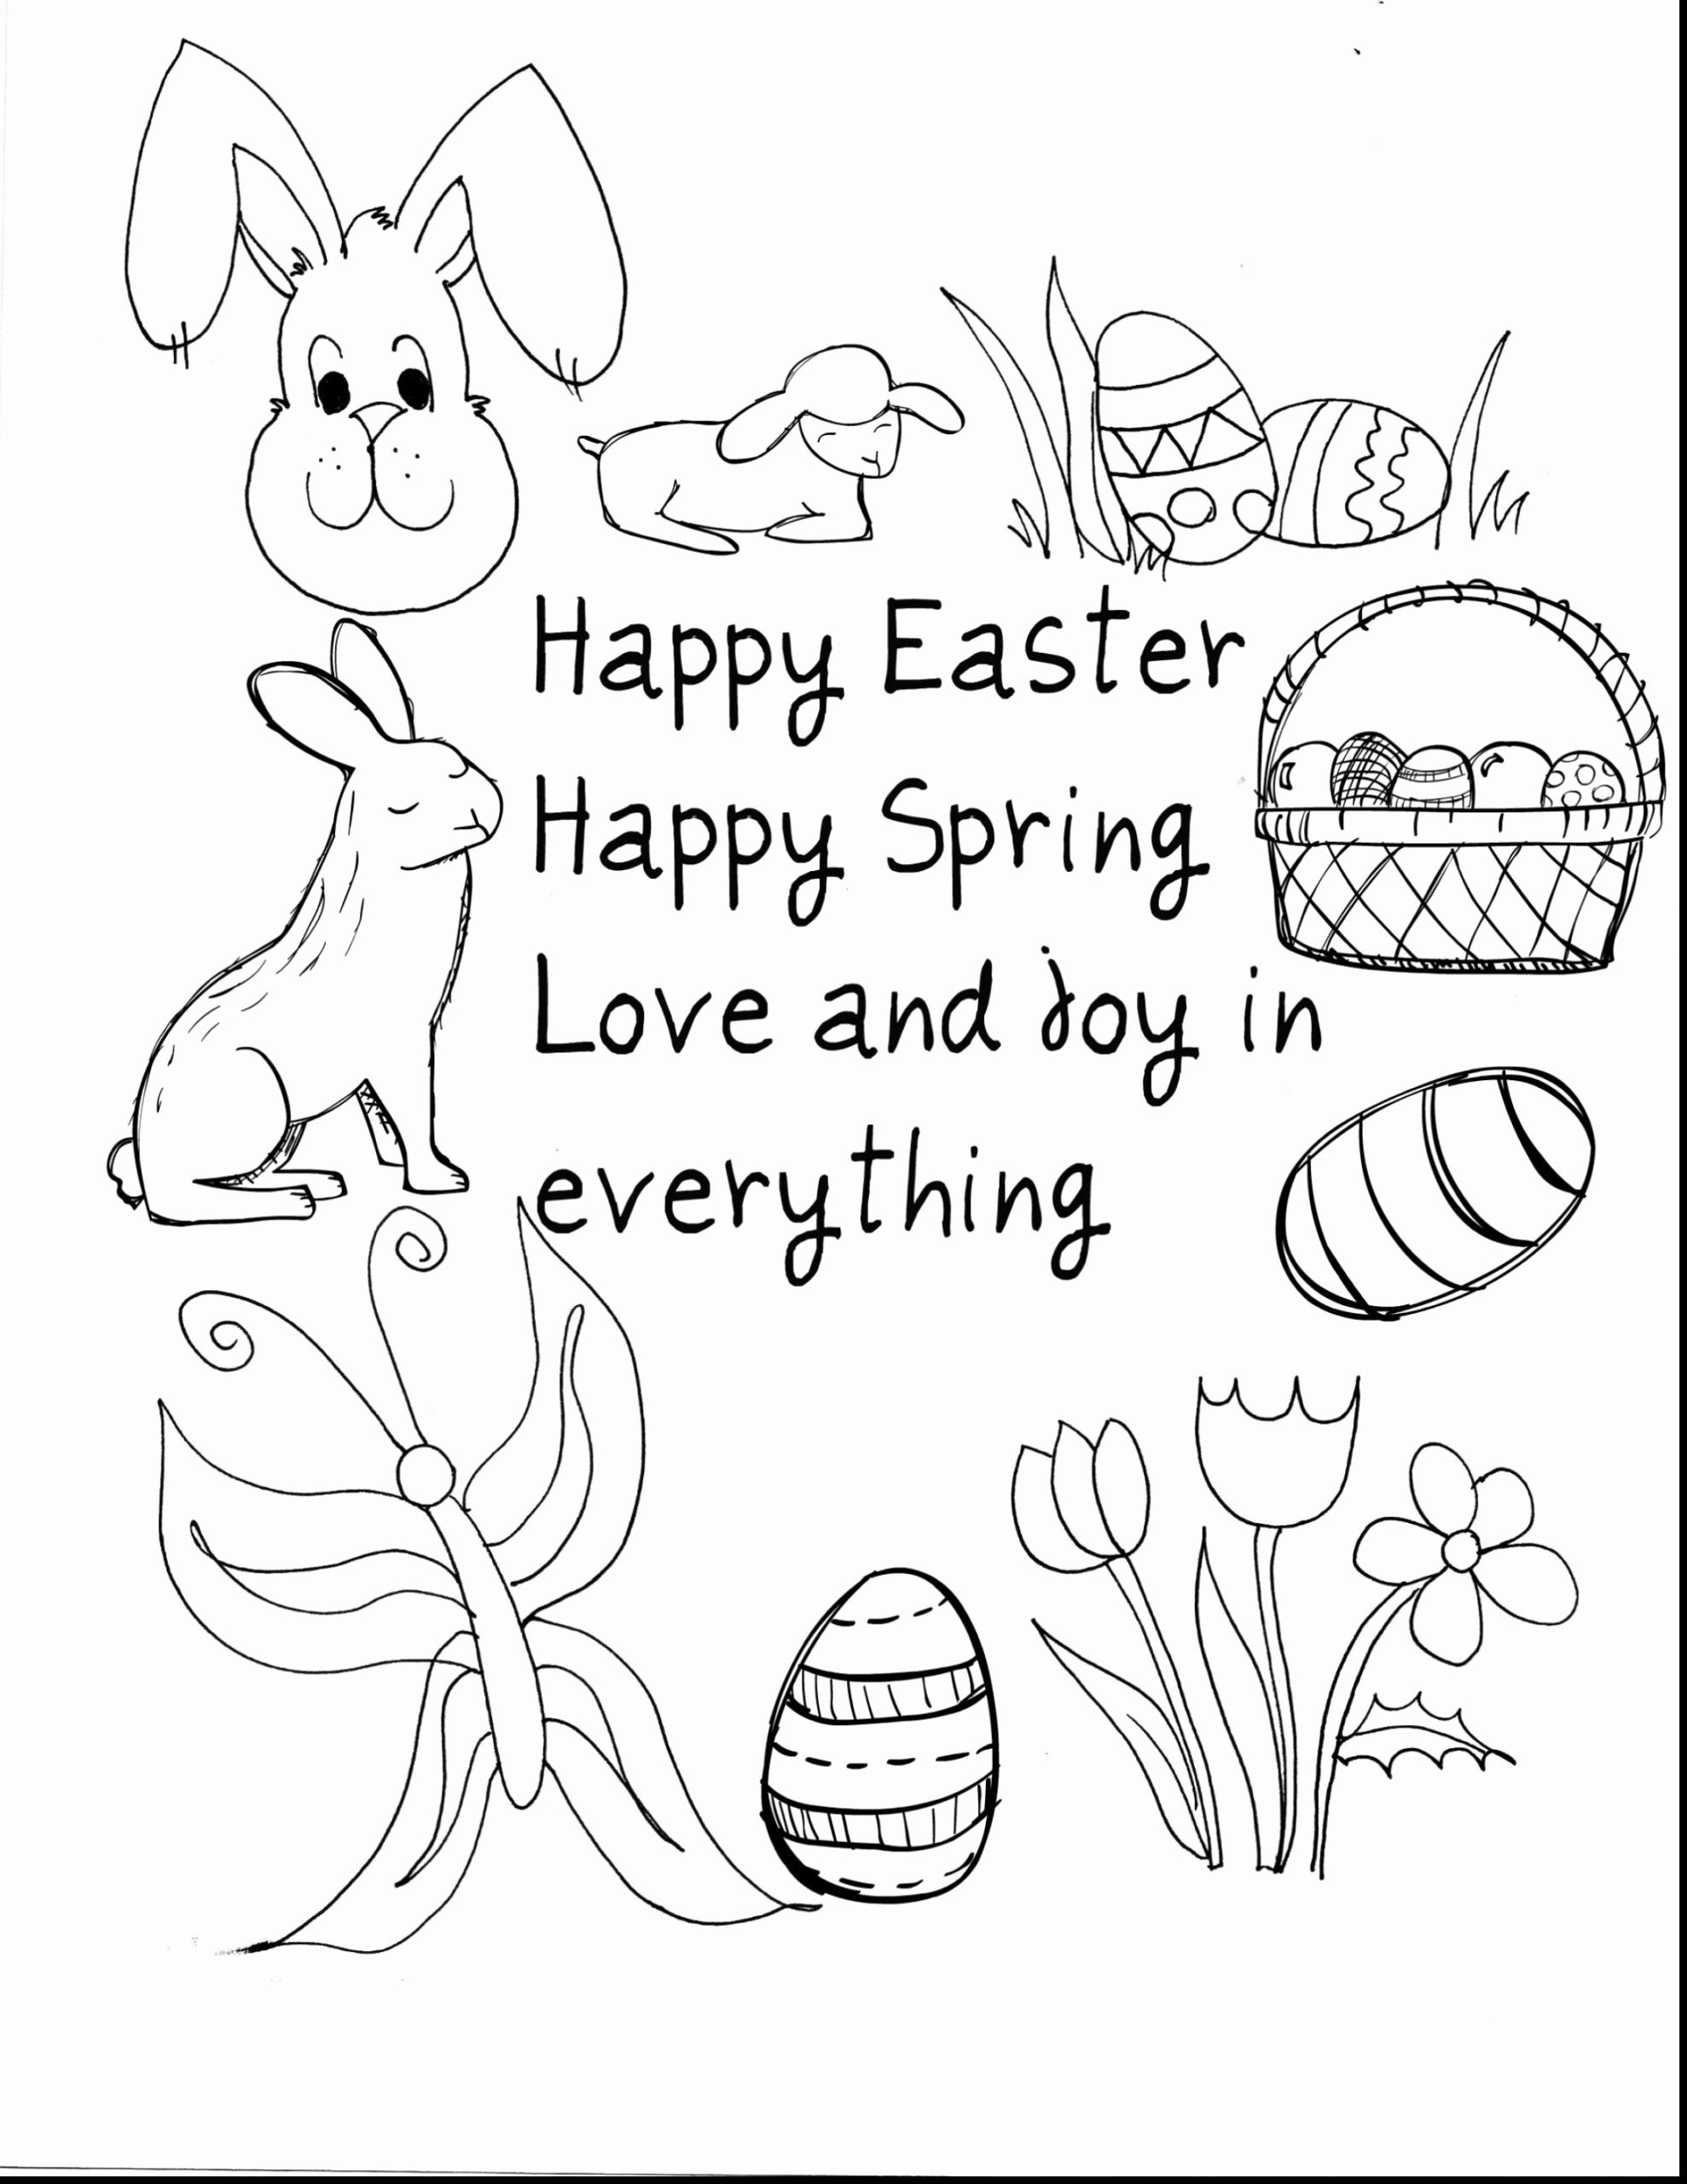 Animal Coloring Pages For 1st Grade Awesome Coloring Pages The Best Free Peachy Colo Easter Coloring Pages Easter Coloring Pages Printable Easter Coloring Book